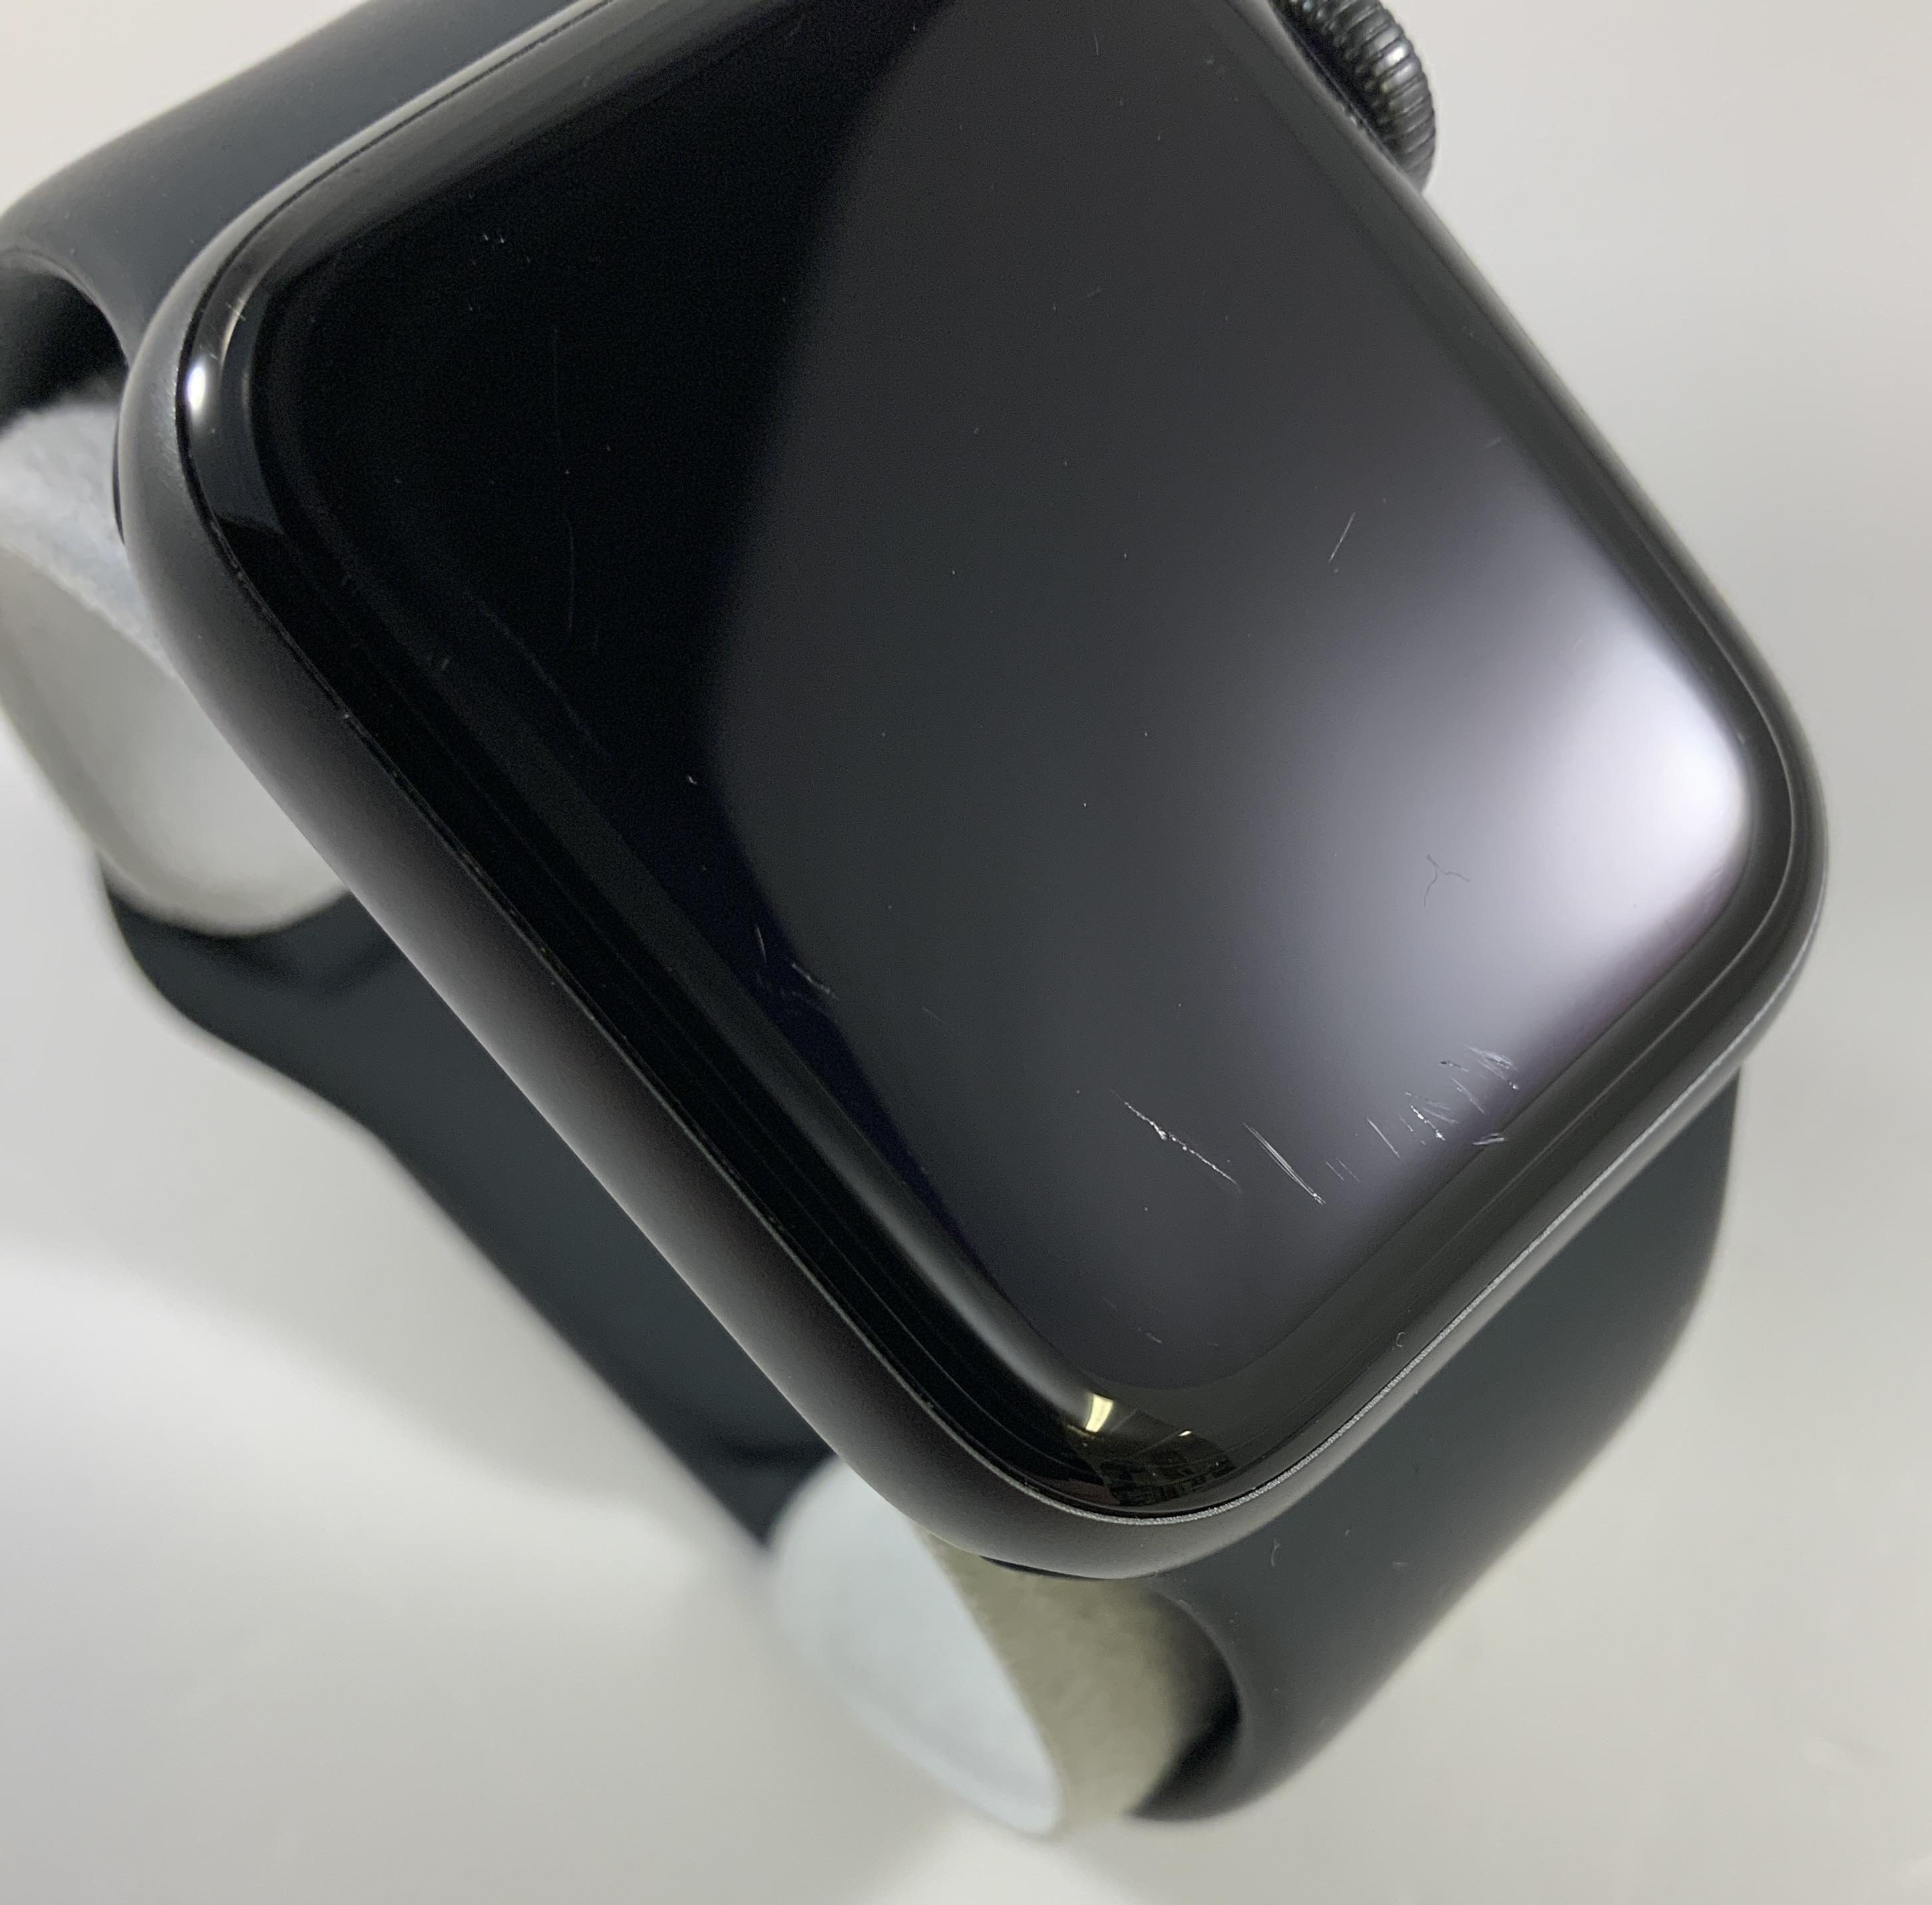 Watch Series 5 Aluminum (40mm), Space Gray, image 2